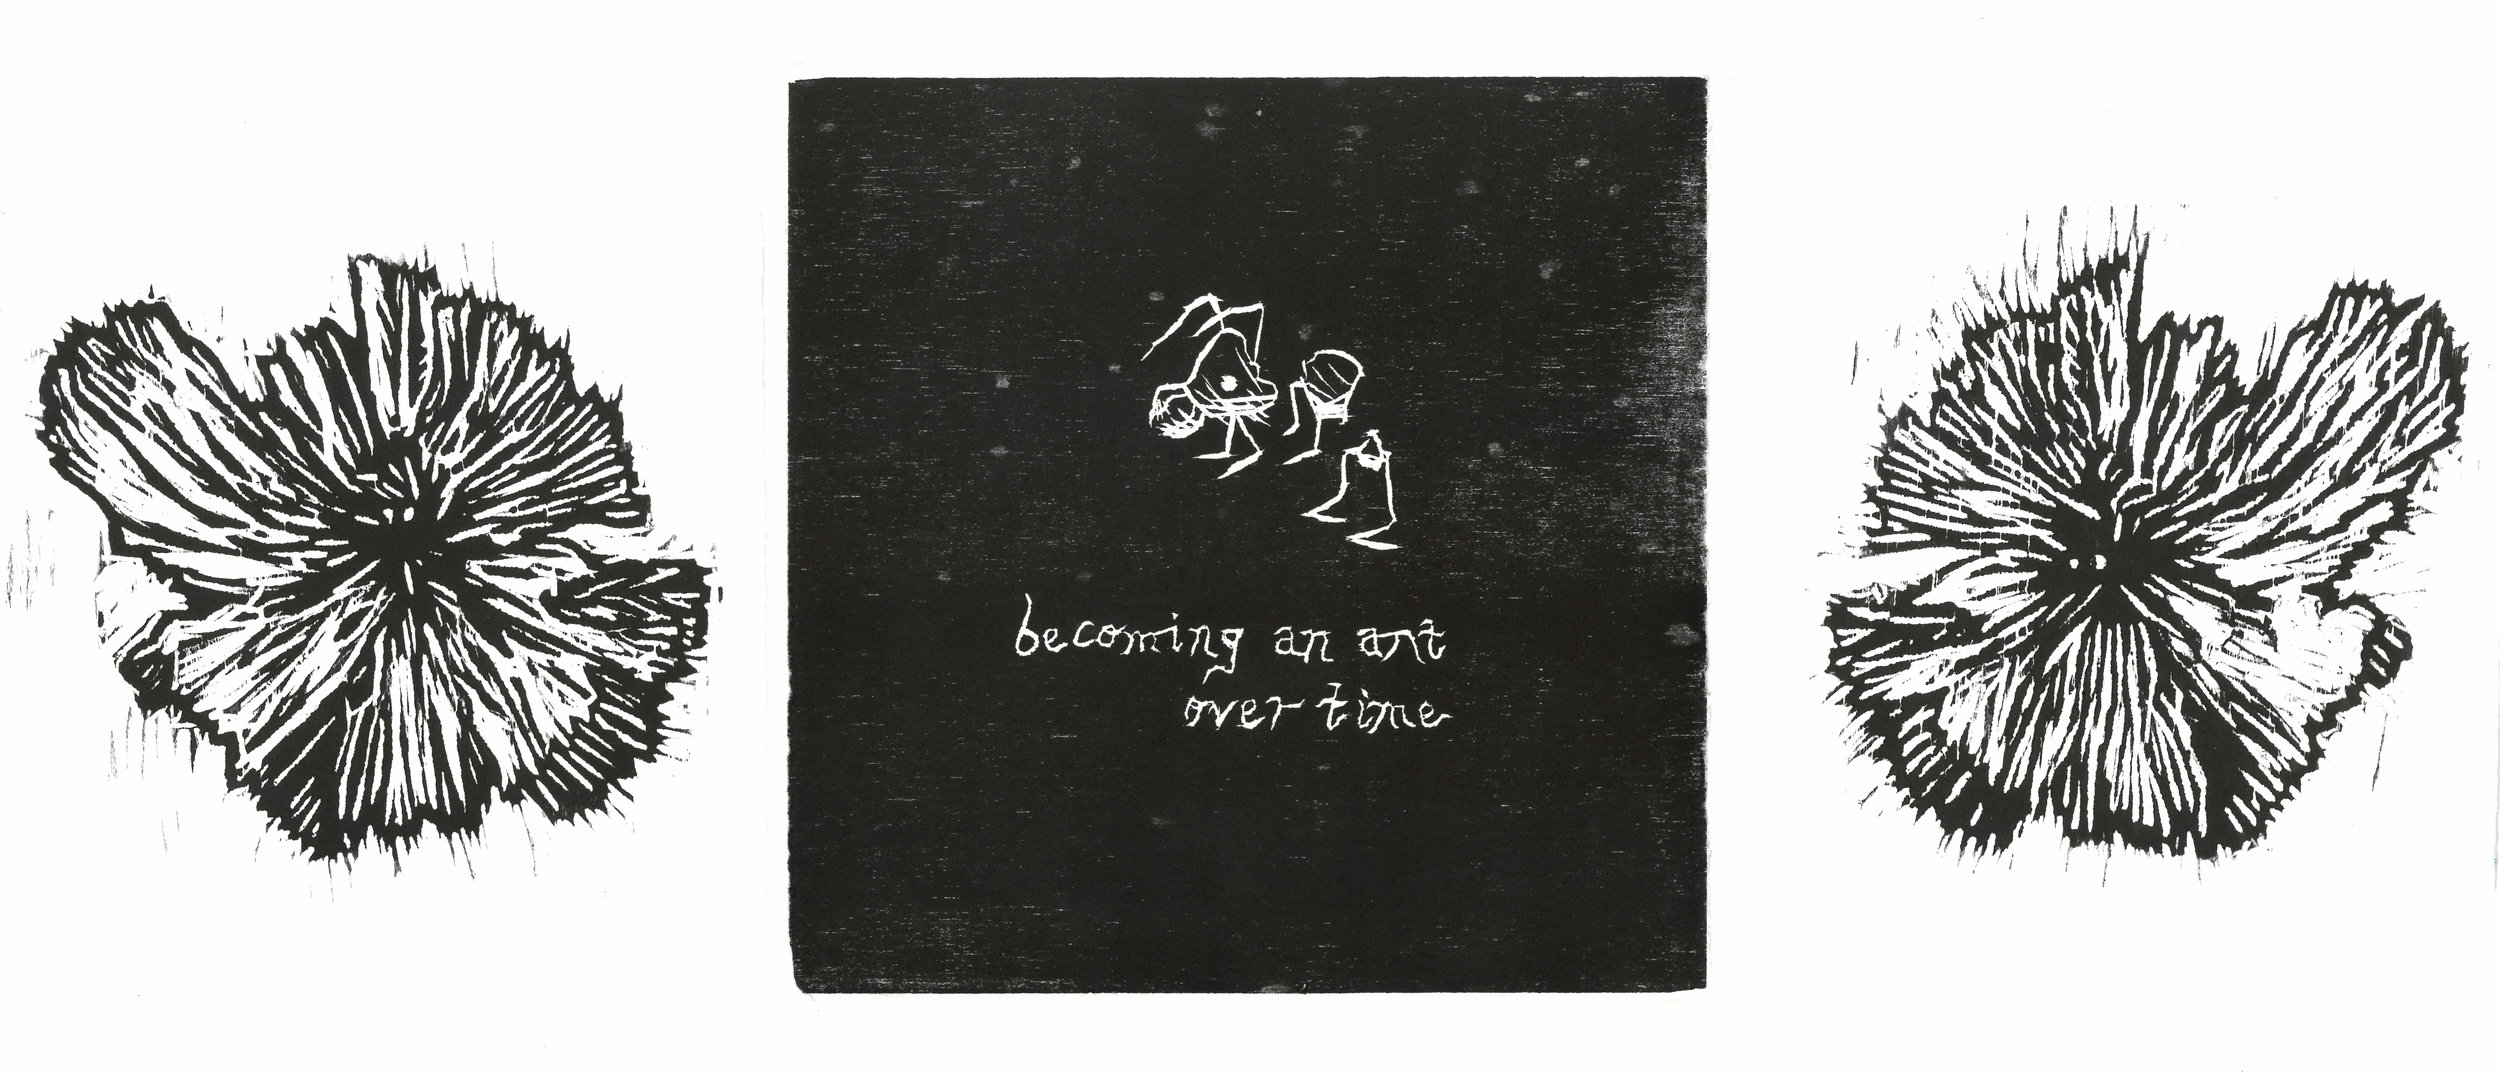 Copy of Becoming an Ant